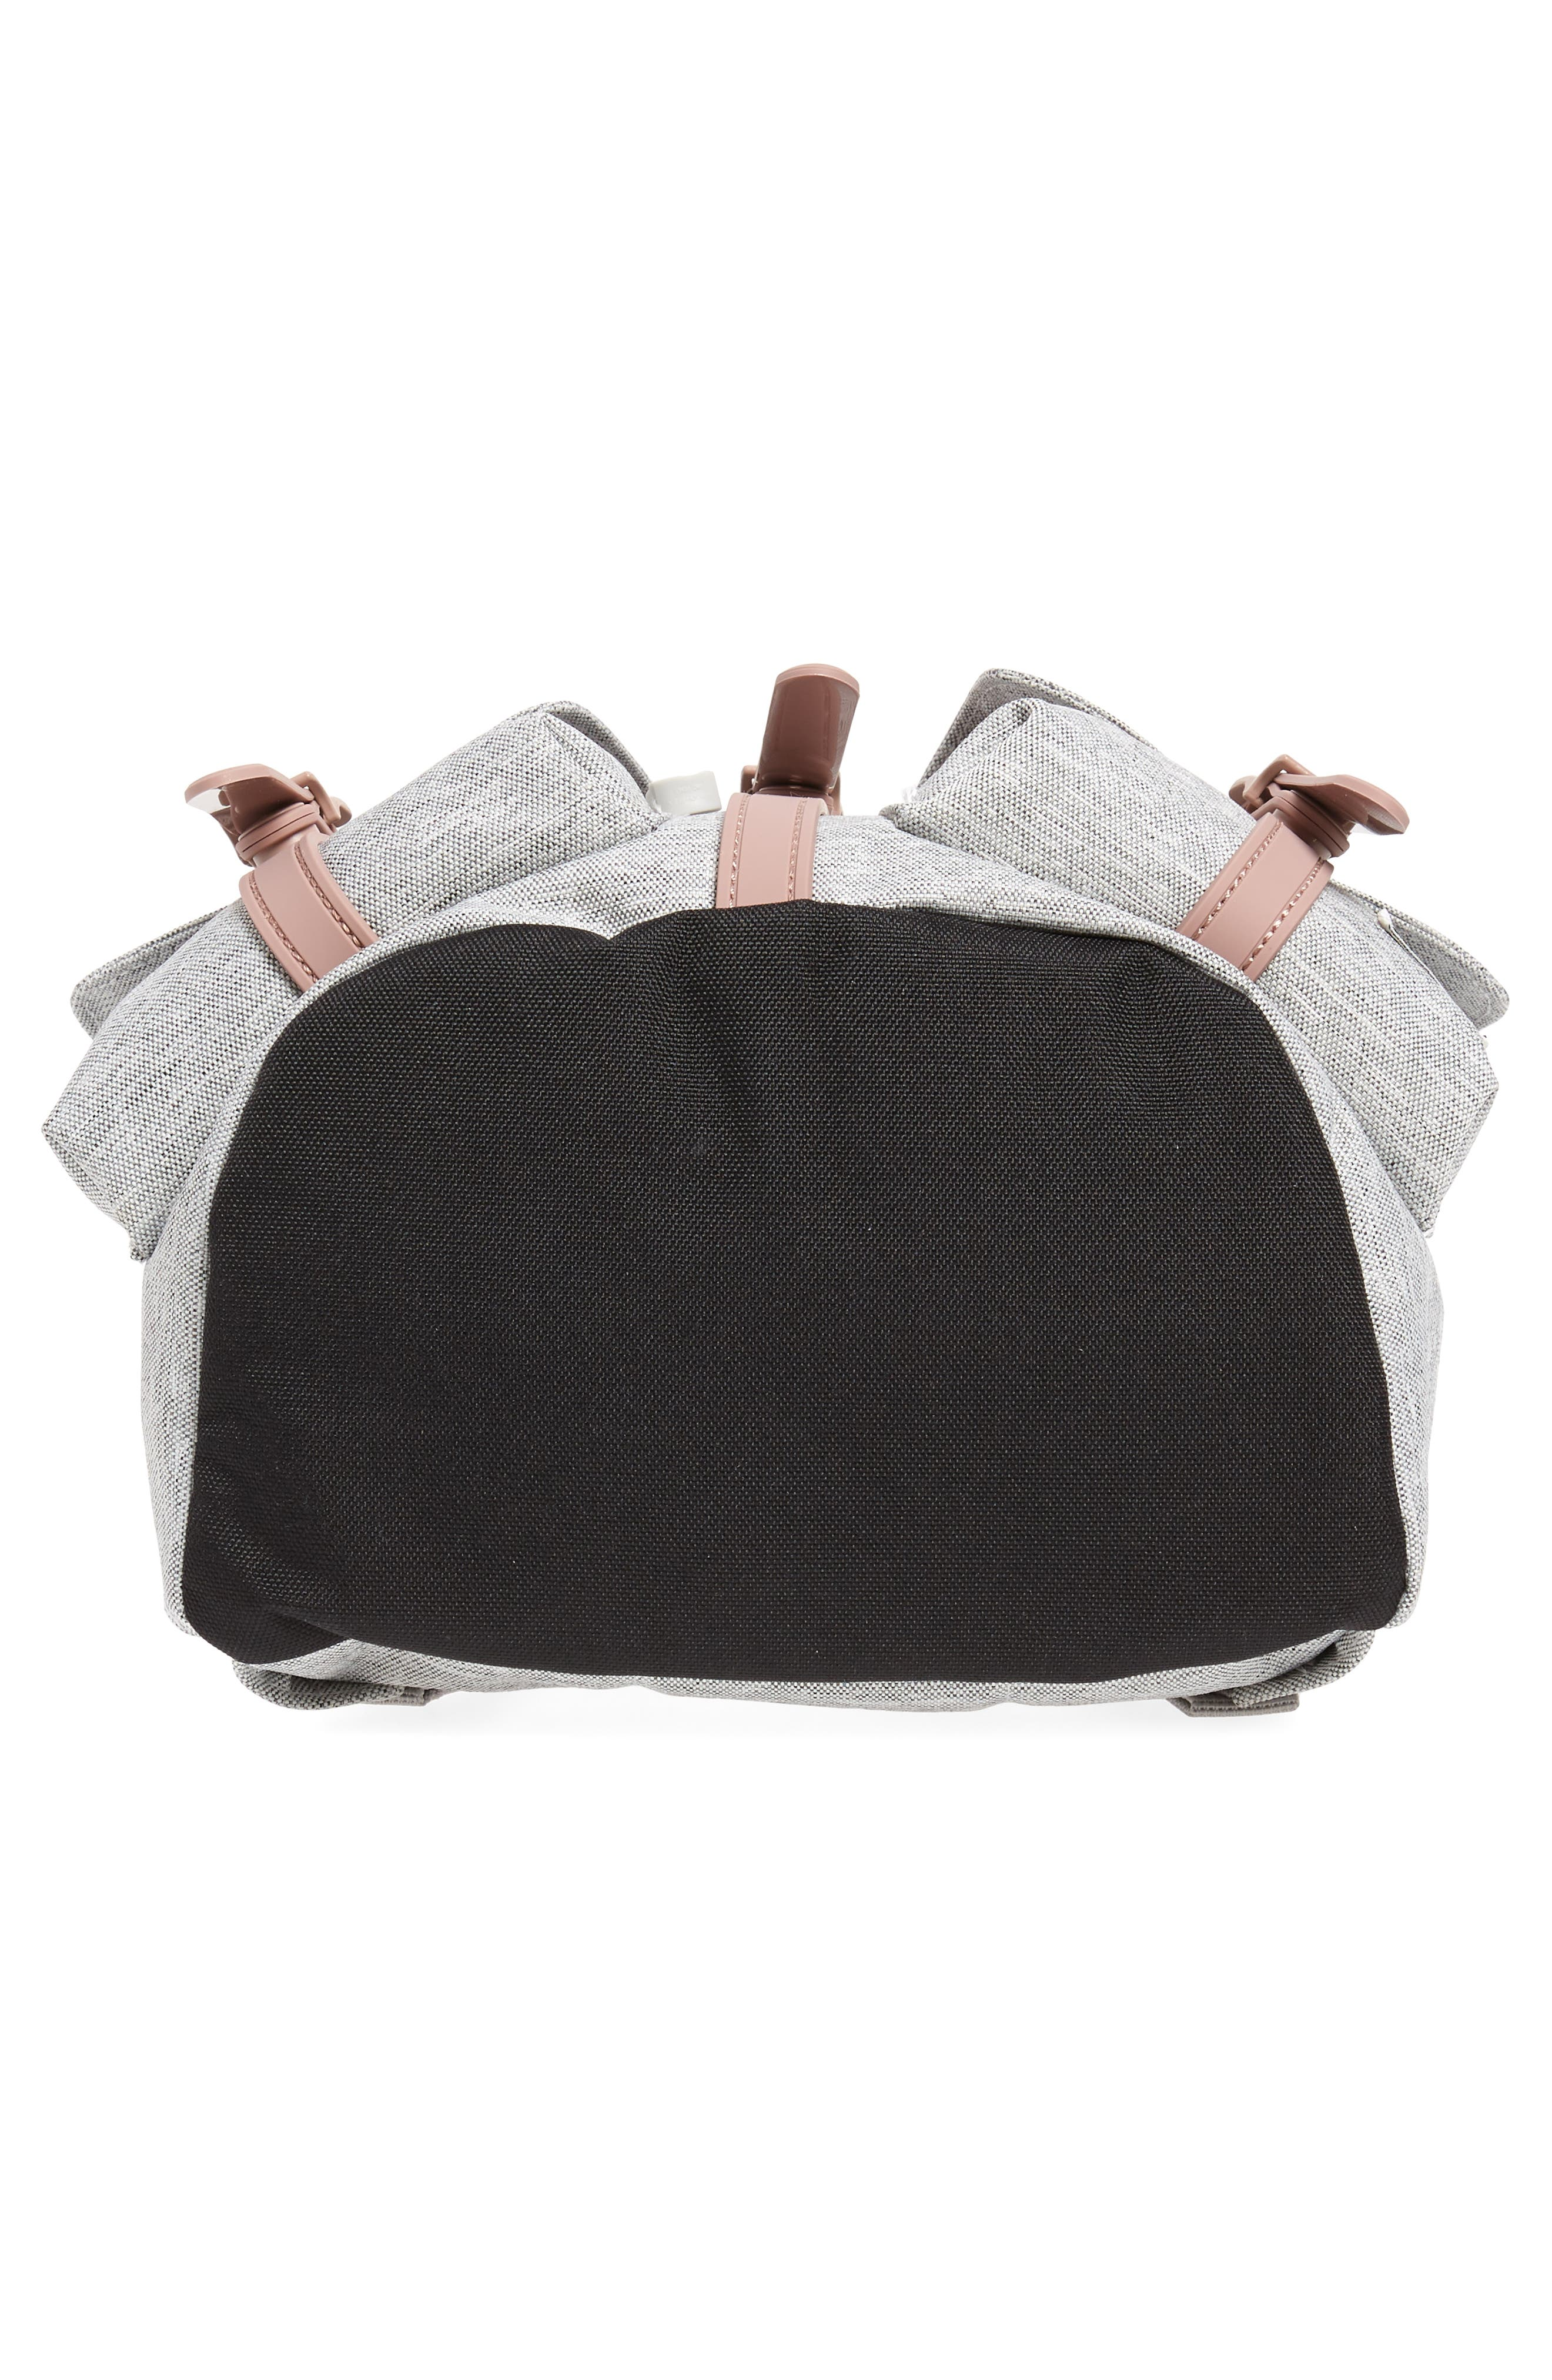 X-Small Dawson Backpack,                             Alternate thumbnail 6, color,                             LIGHT GREY/ ASH ROSE/ BLACK